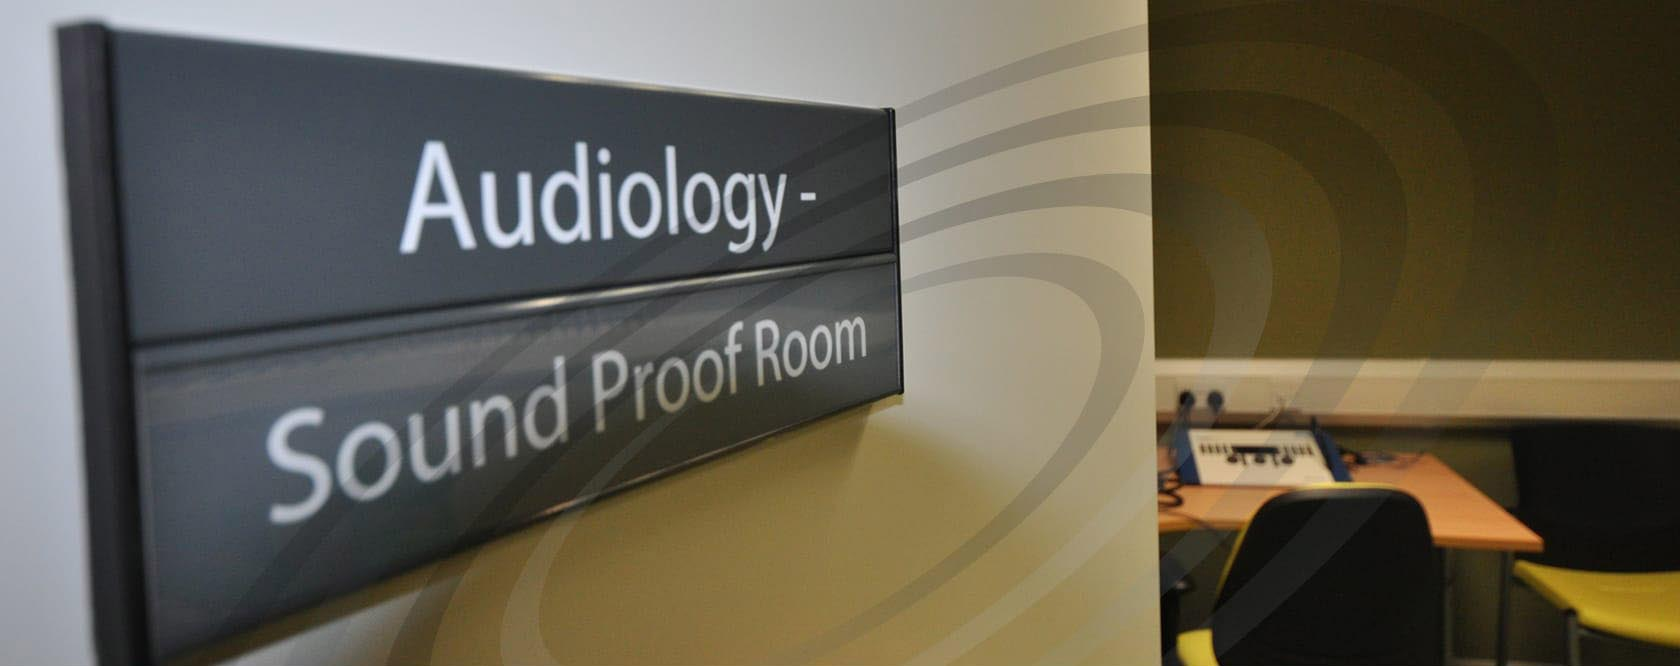 audiology-banner-new